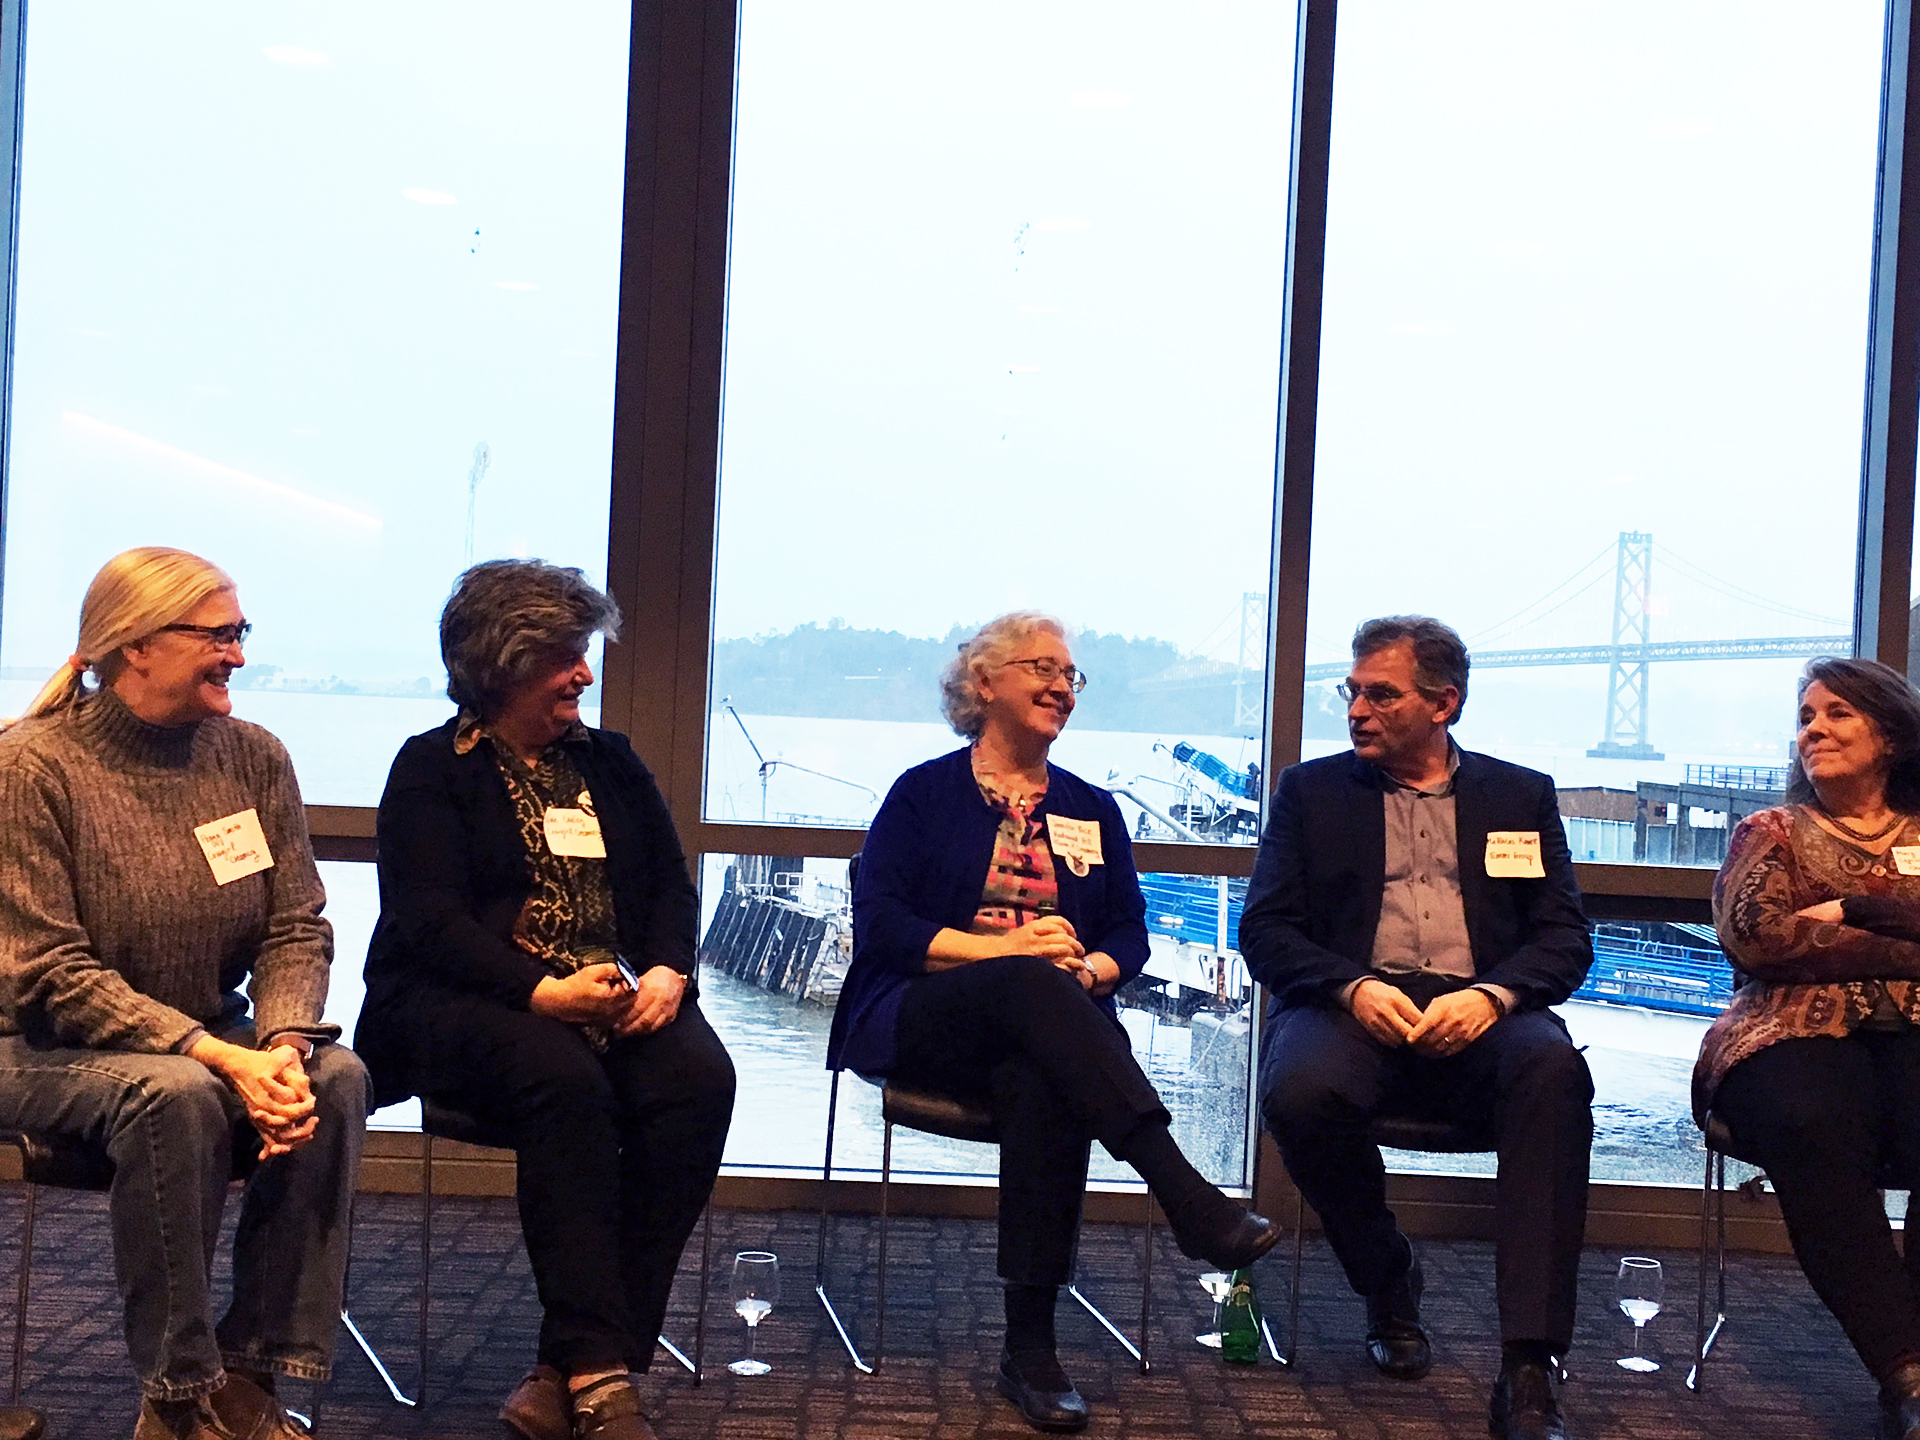 From left: Peggy Smith (Cowgirl Creamery), Sue Conley (Cowgirl Creamery), Jennifer Bice (Redwood Hill), Matthias Kunz (Emmi), and Mary Keehn (Cypress Grove) in the Port Room of the San Francisco Ferry Building.